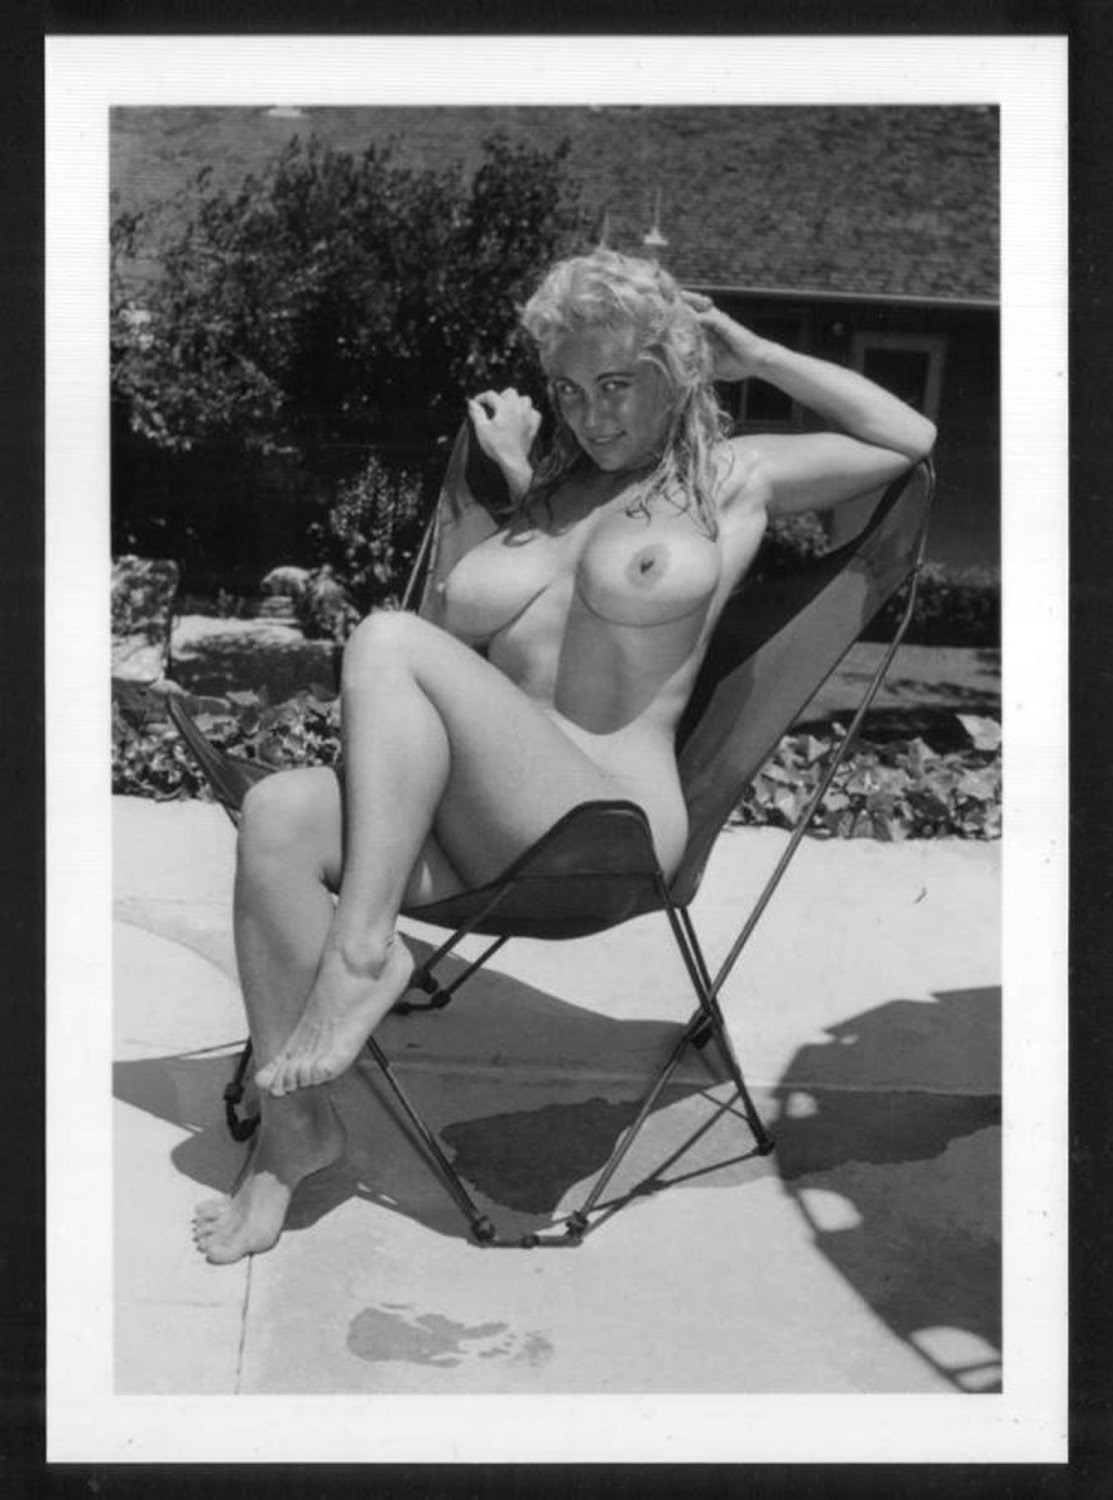 VIRGINIA BELL TOPLESS NUDE HUGE BREASTS NEW REPRINT 5 X 7 #110